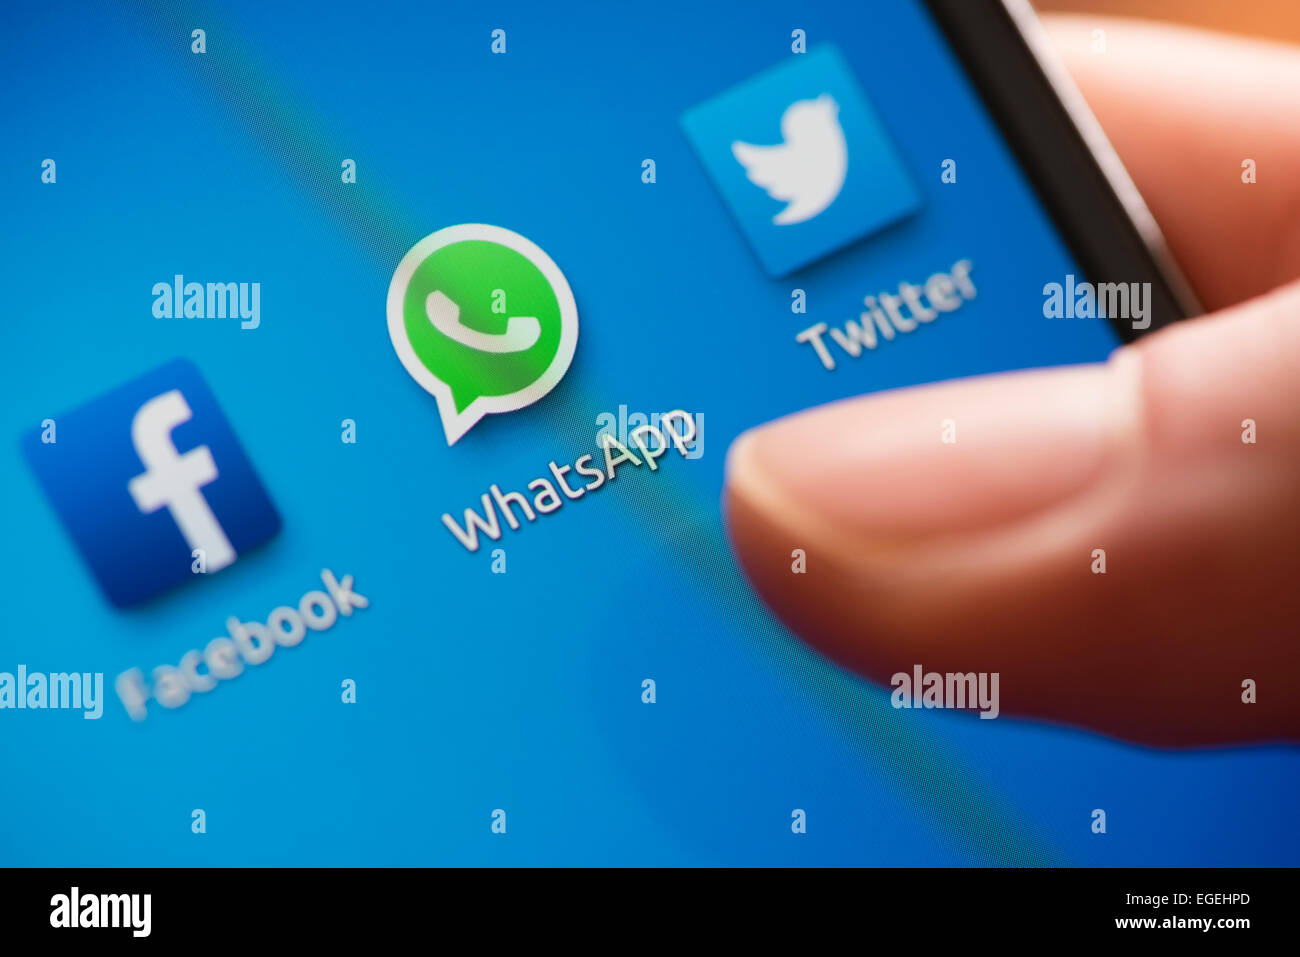 how to download facebook app on samsung